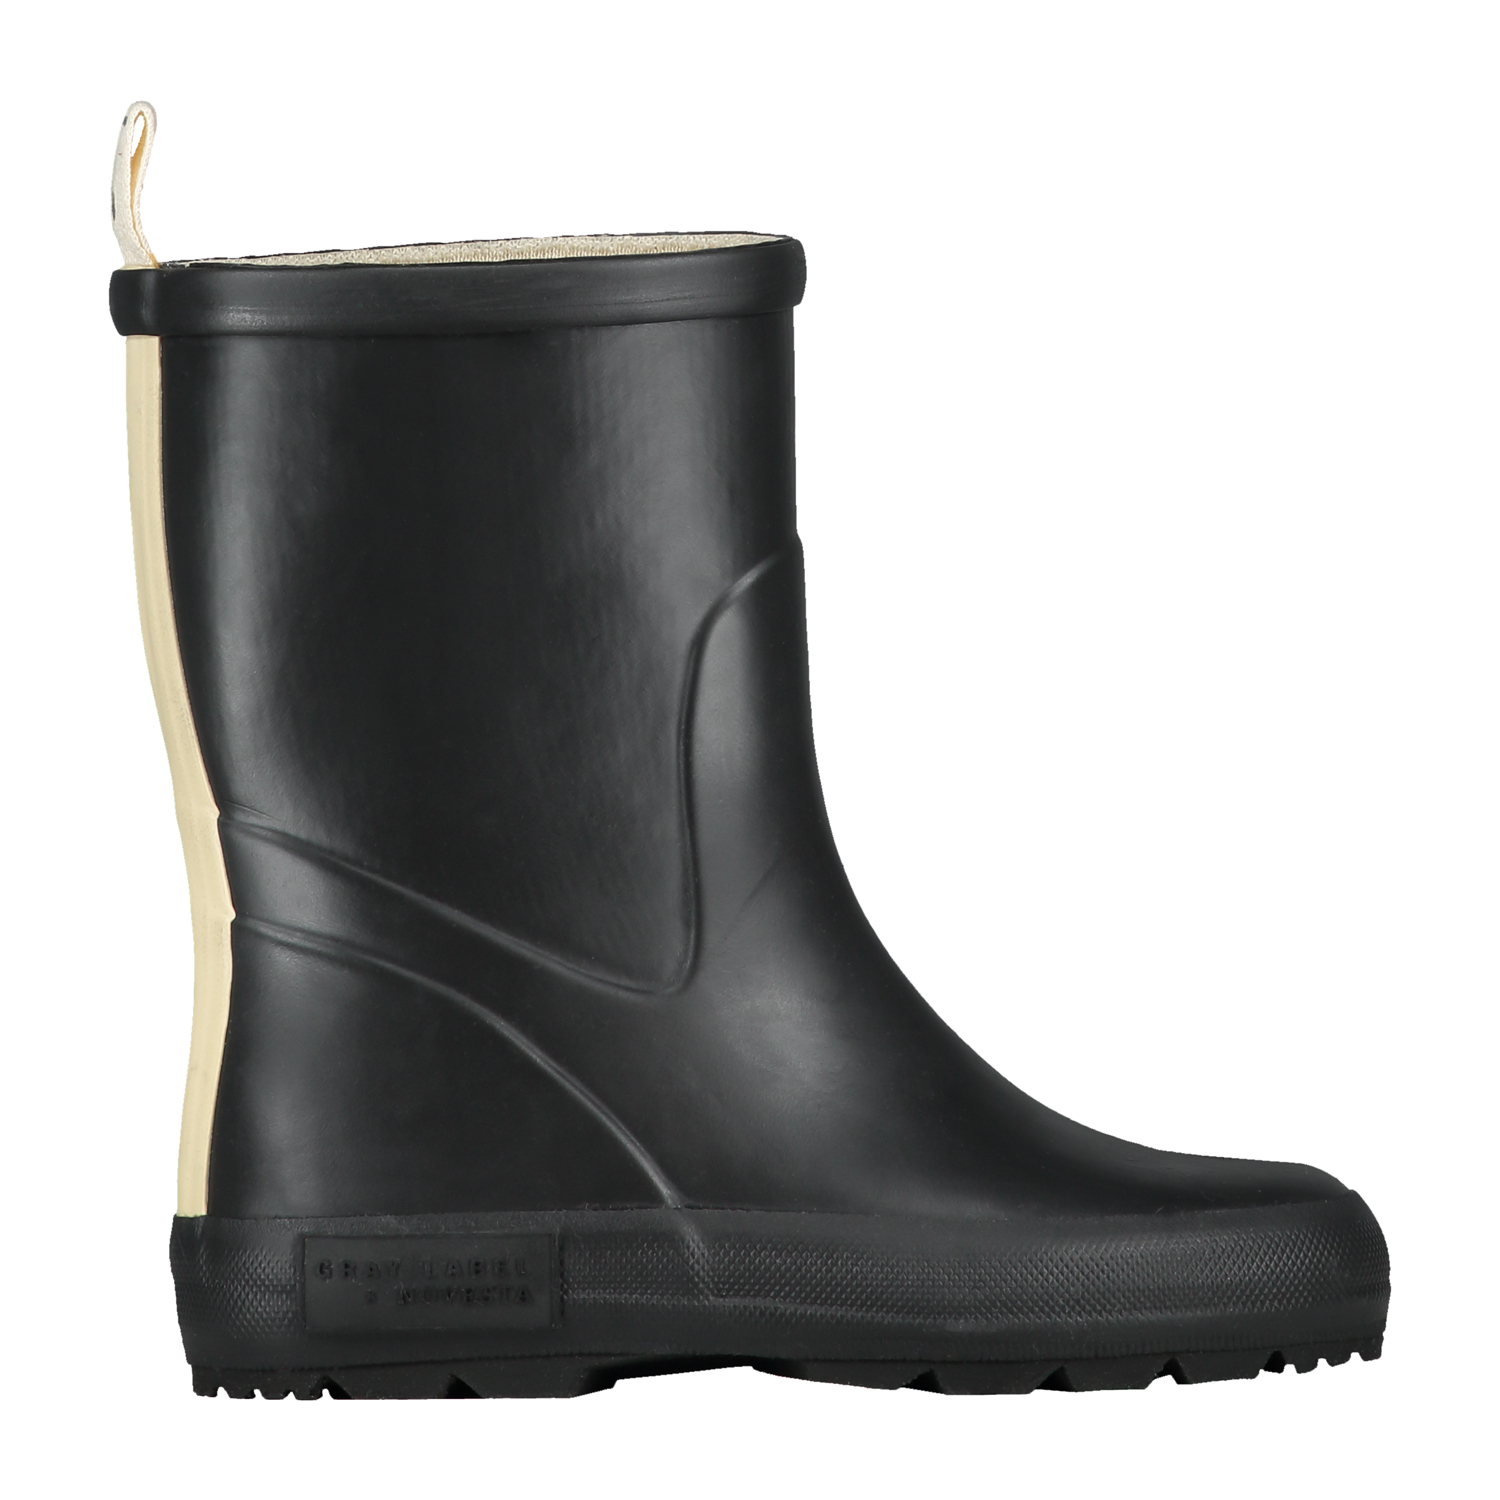 gray label x novesta rain boots nearly black